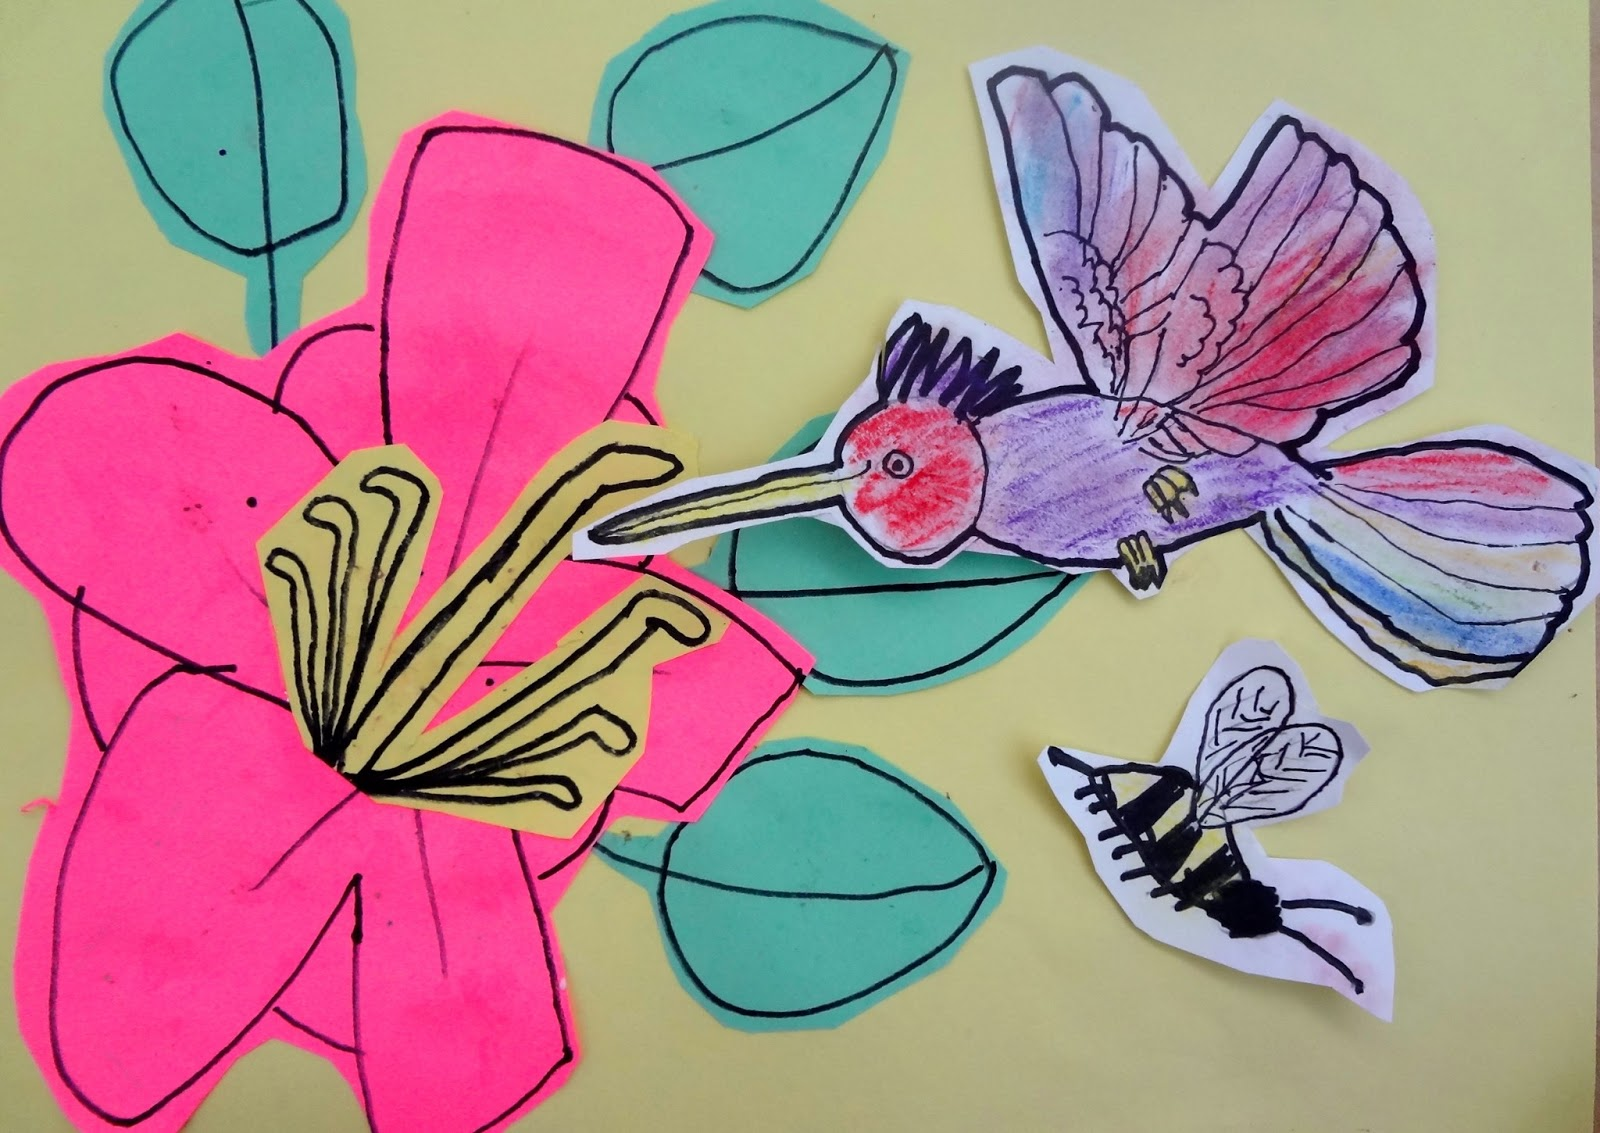 The Talking Walls Art Science Integrated Pollination